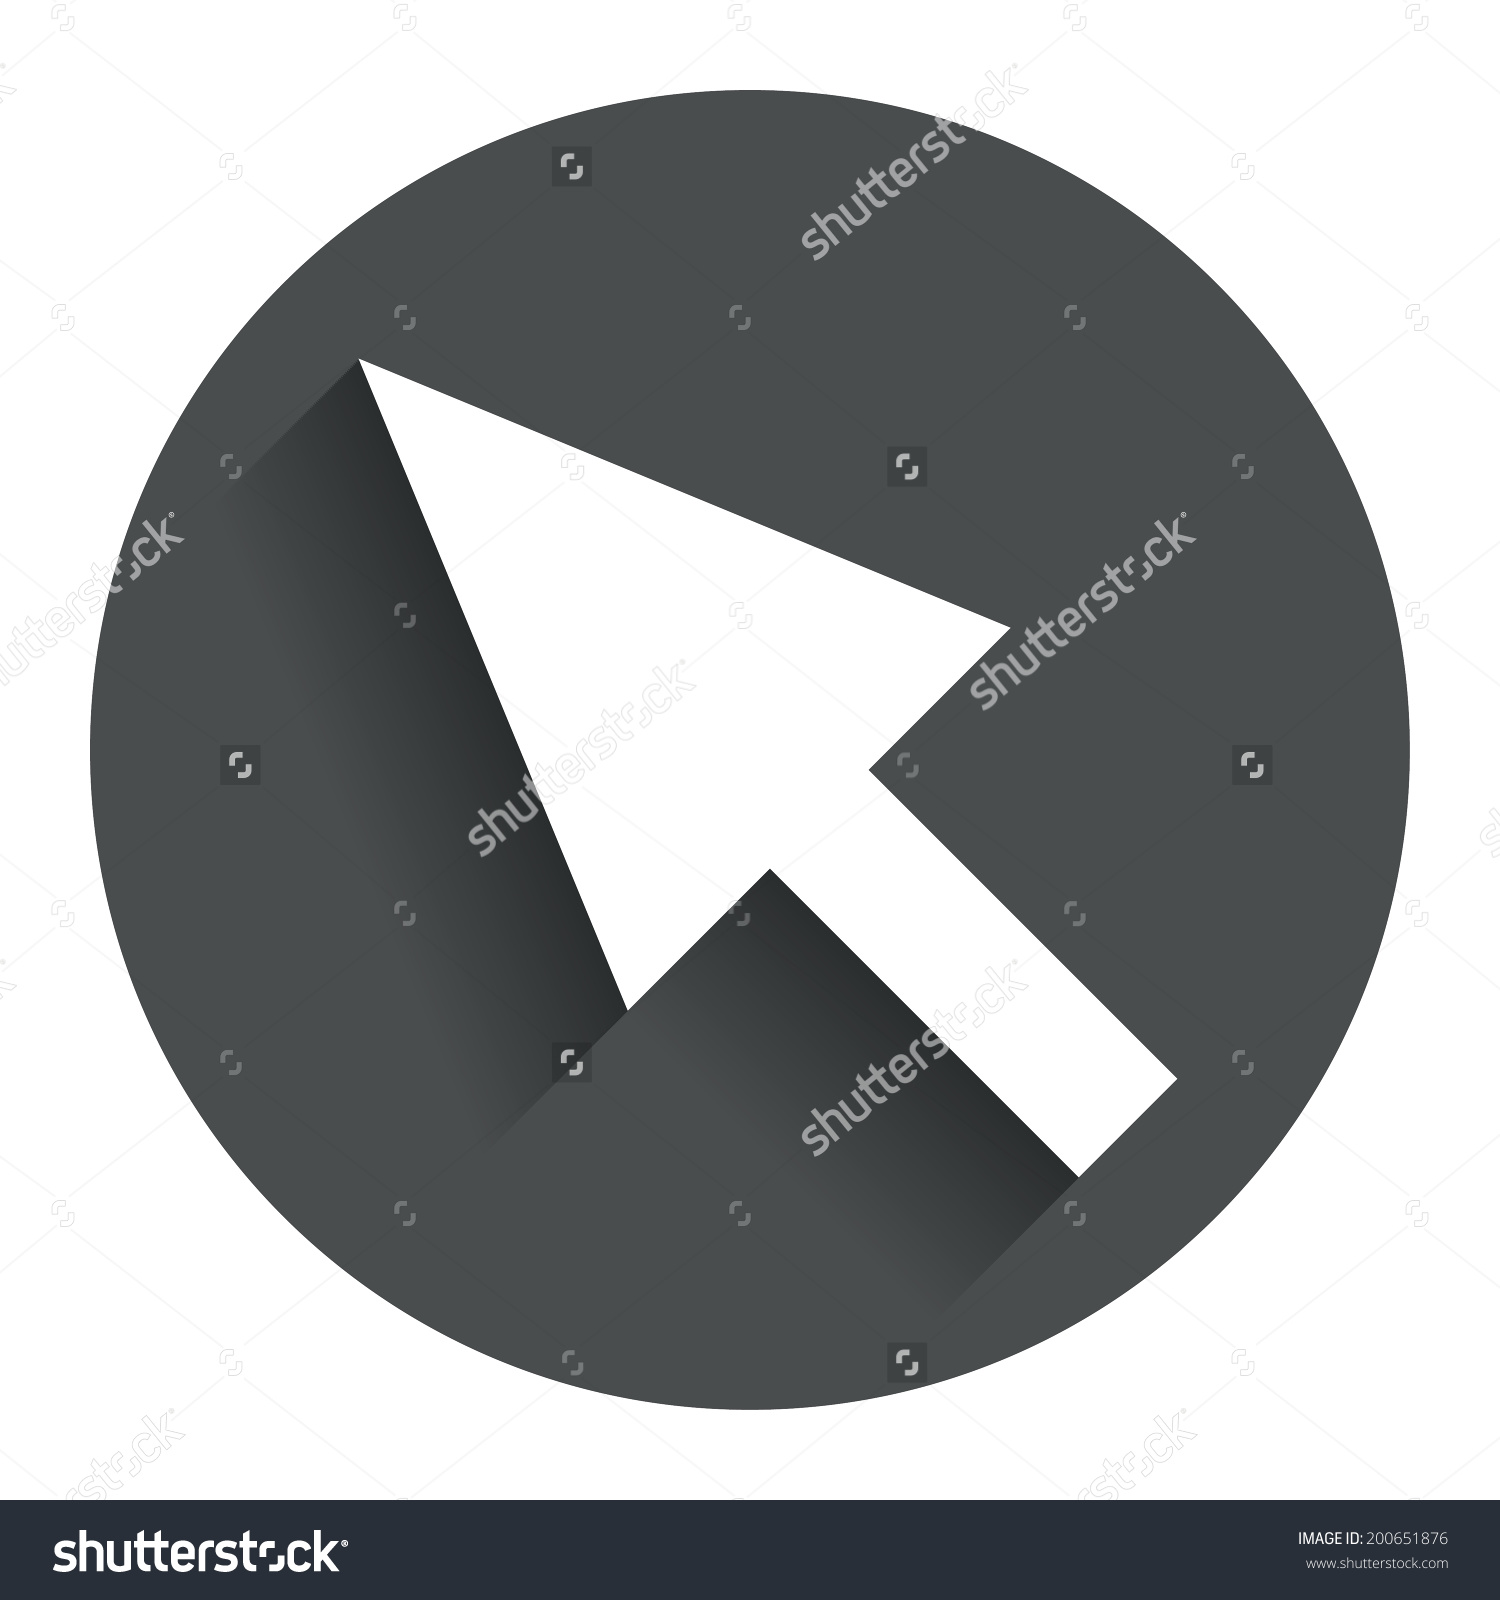 Arrow pointer clipart modern. Clipartfest drawing gg save